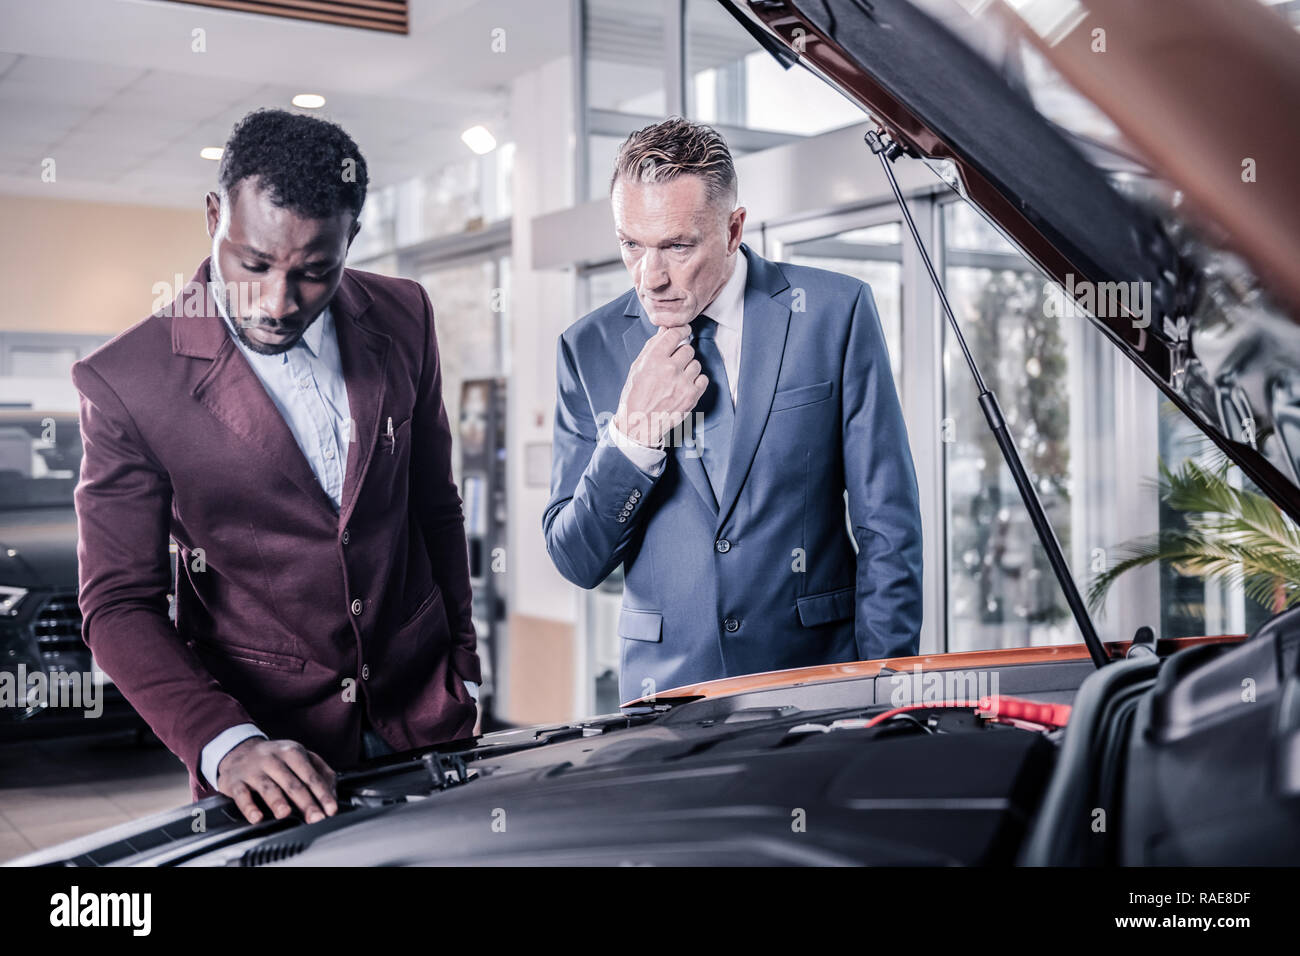 Sales manager wearing dark red jacket standing near client and car - Stock Image